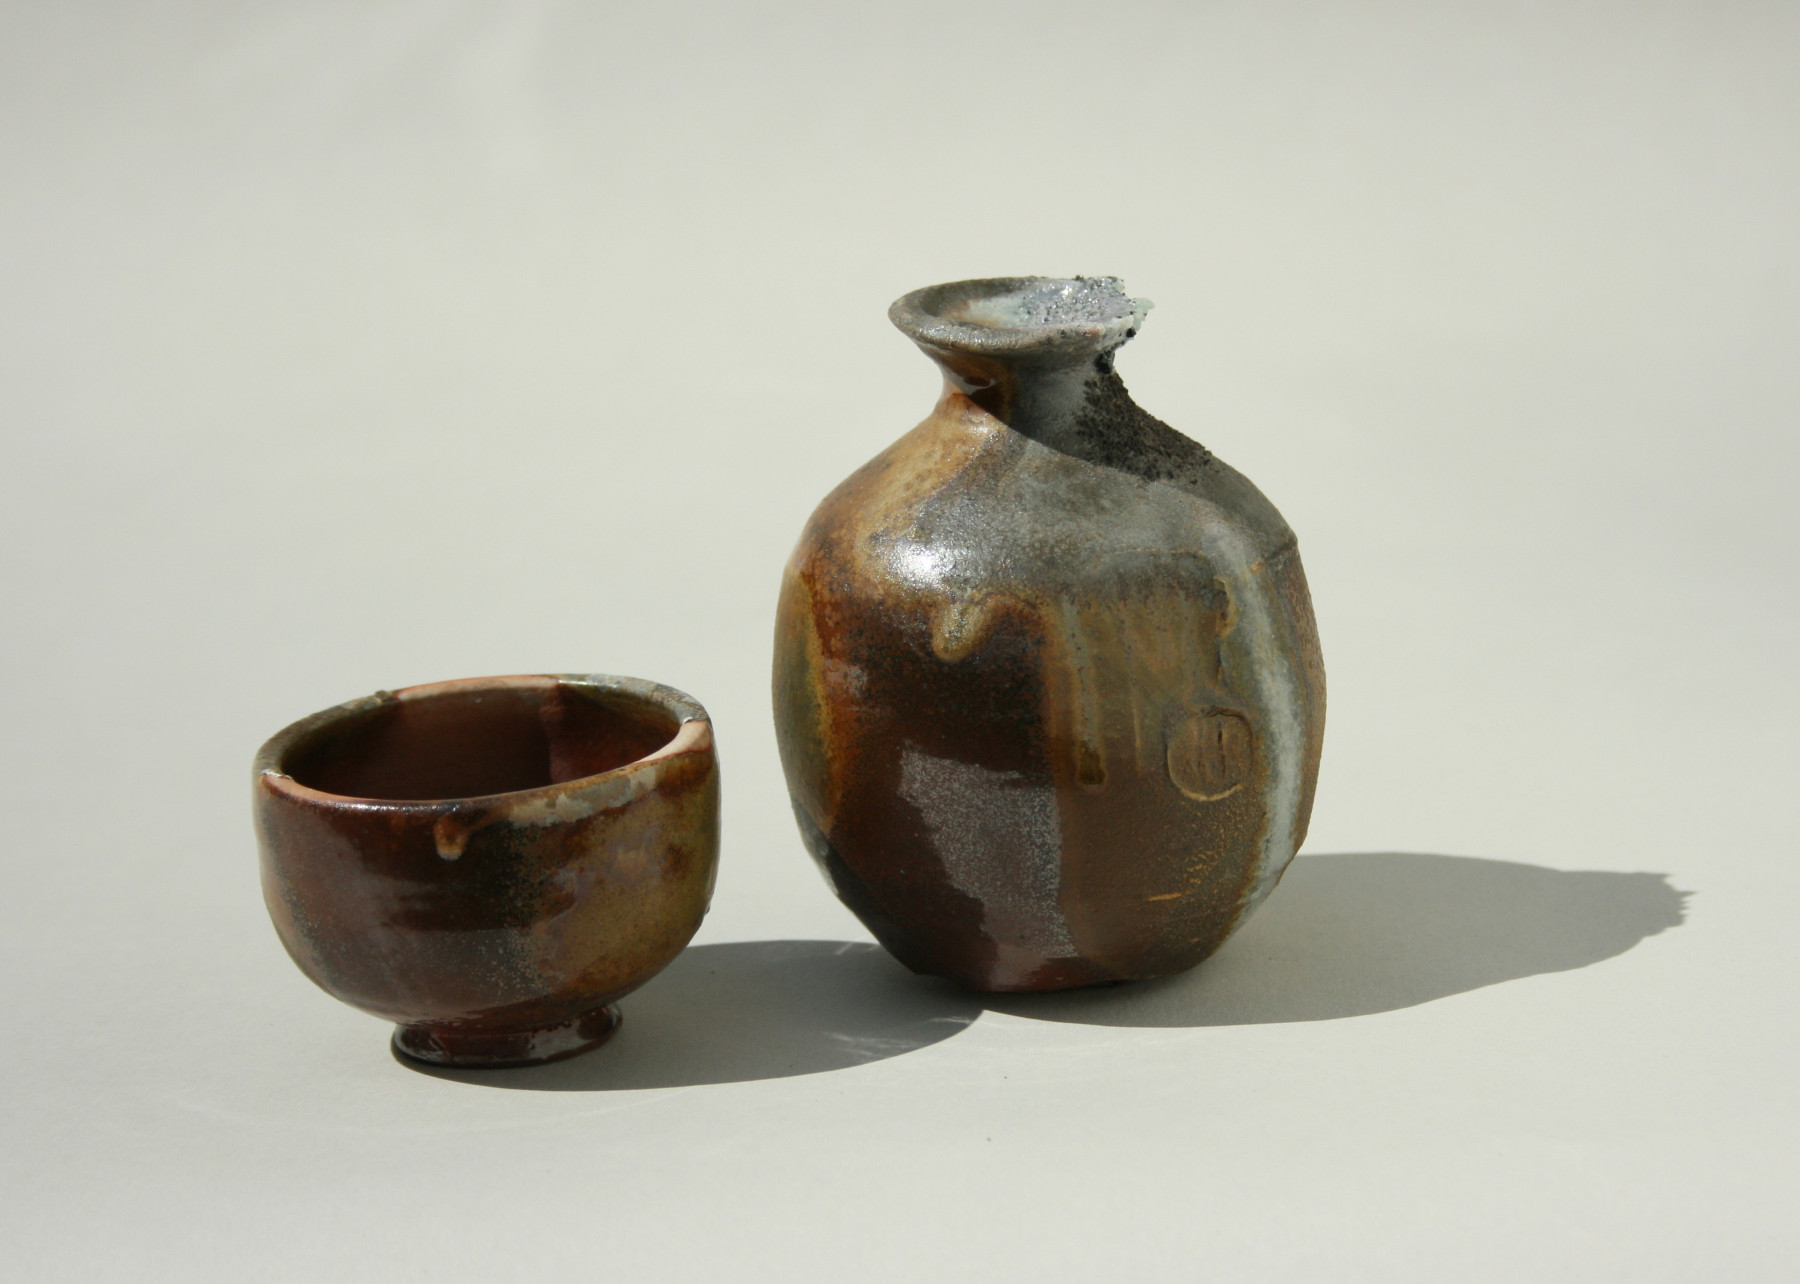 Wood fired sake set, fired at Peter's Valley Craft Center's Anagama kiln